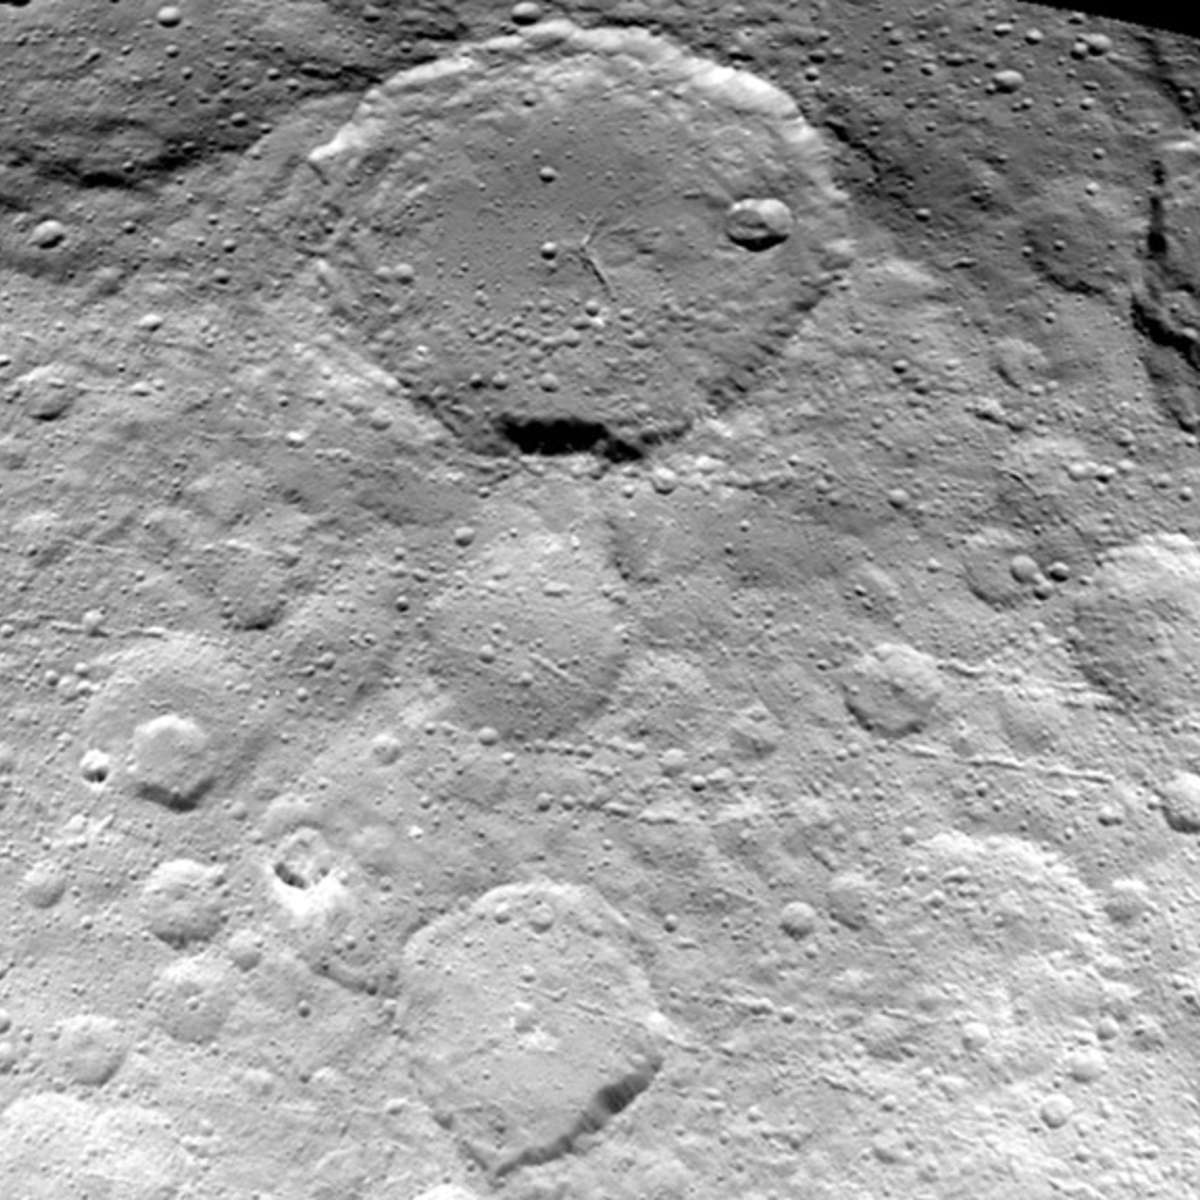 dawn_ceres_closeup_may232015_0.jpg